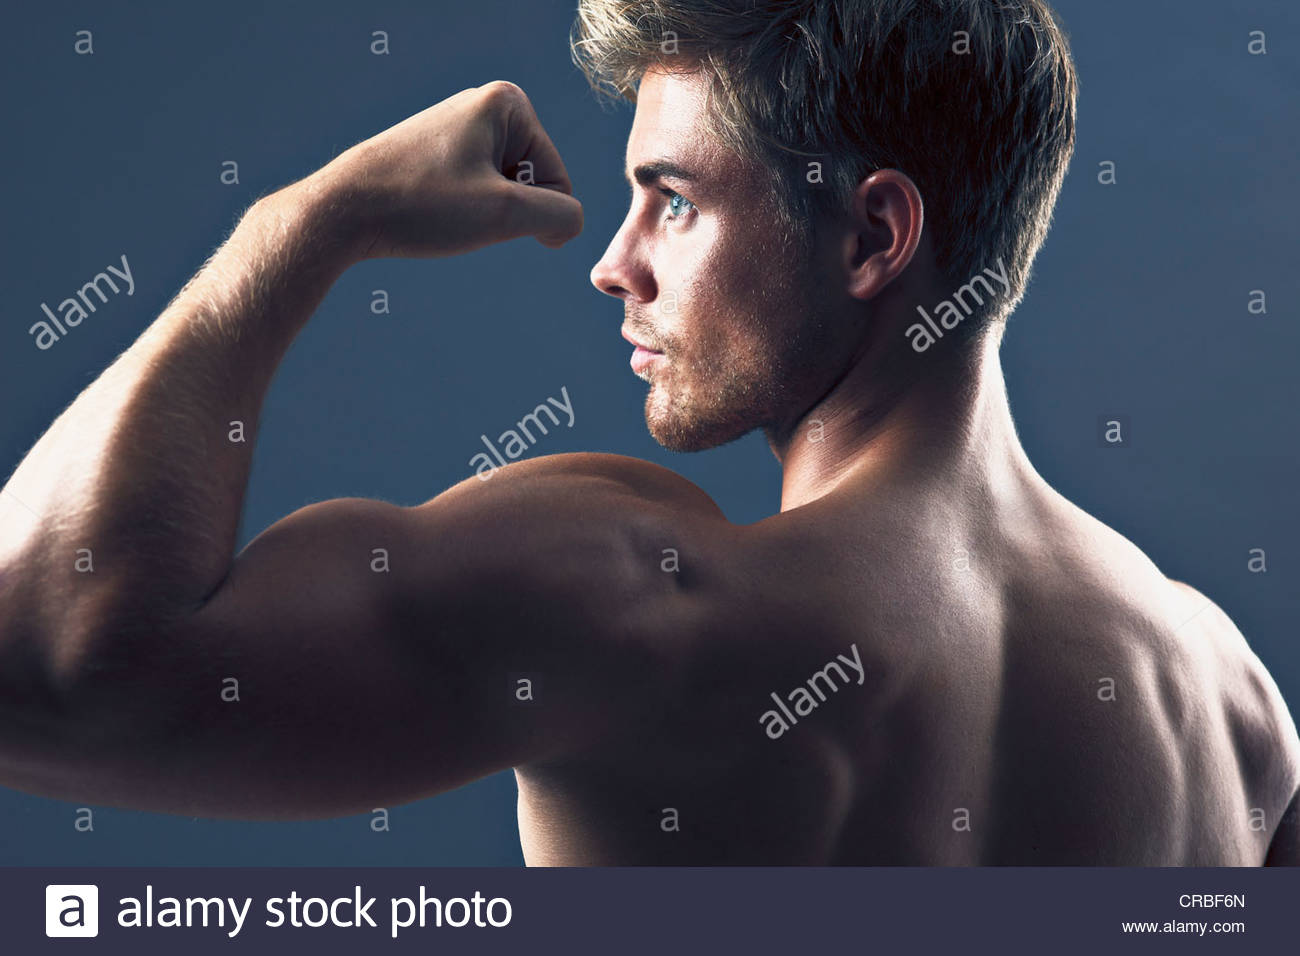 Rear view portrait of man flexing biceps muscles - Stock Image